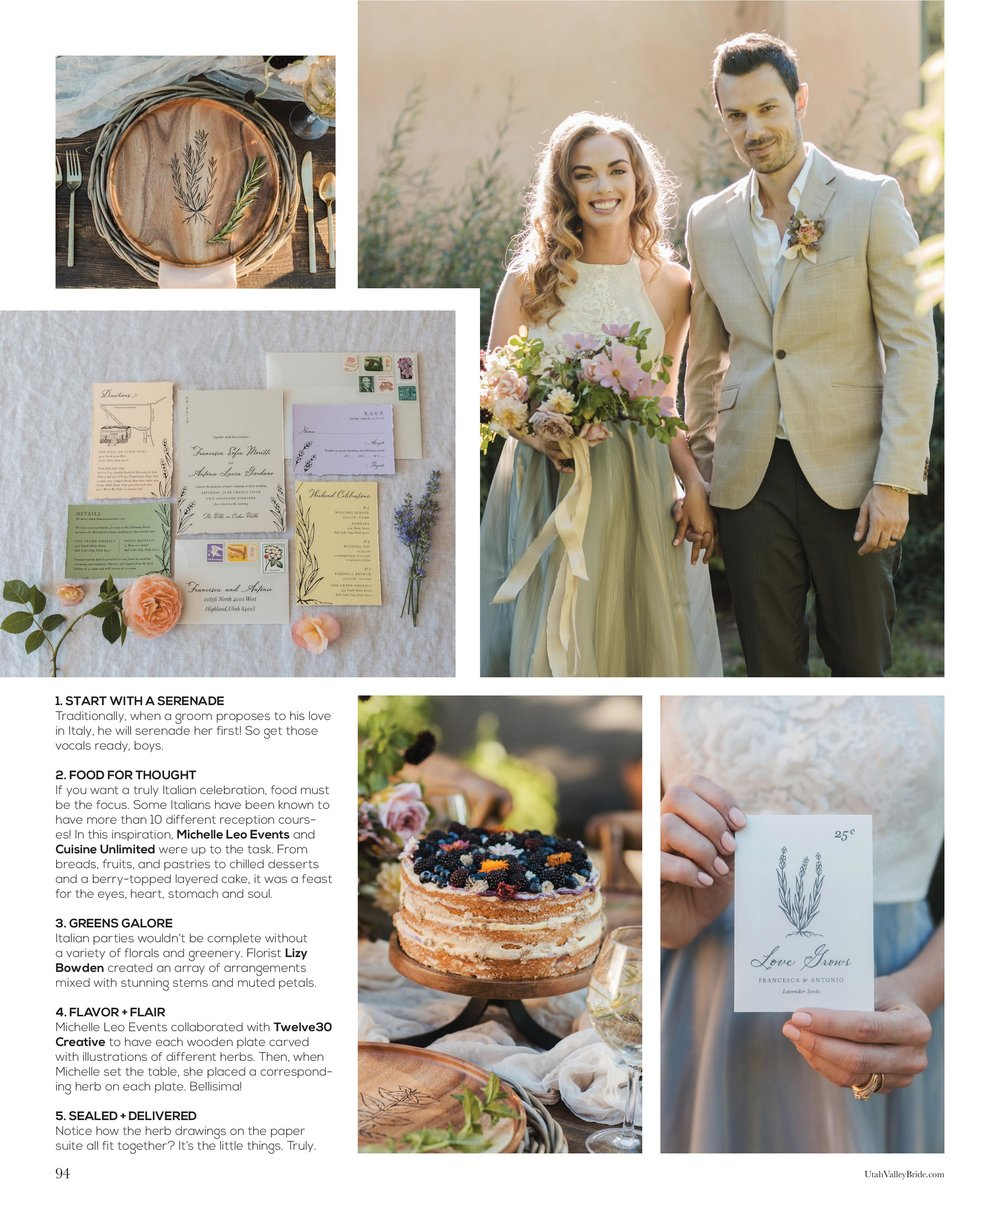 Italian Summer Wedding | Italian Inspired Wedding | Natural Wedding Details | Utah Valley Bride Magazine | Michelle Leo Events | Utah Event Planner and Designer | Alixann Loosle Photography